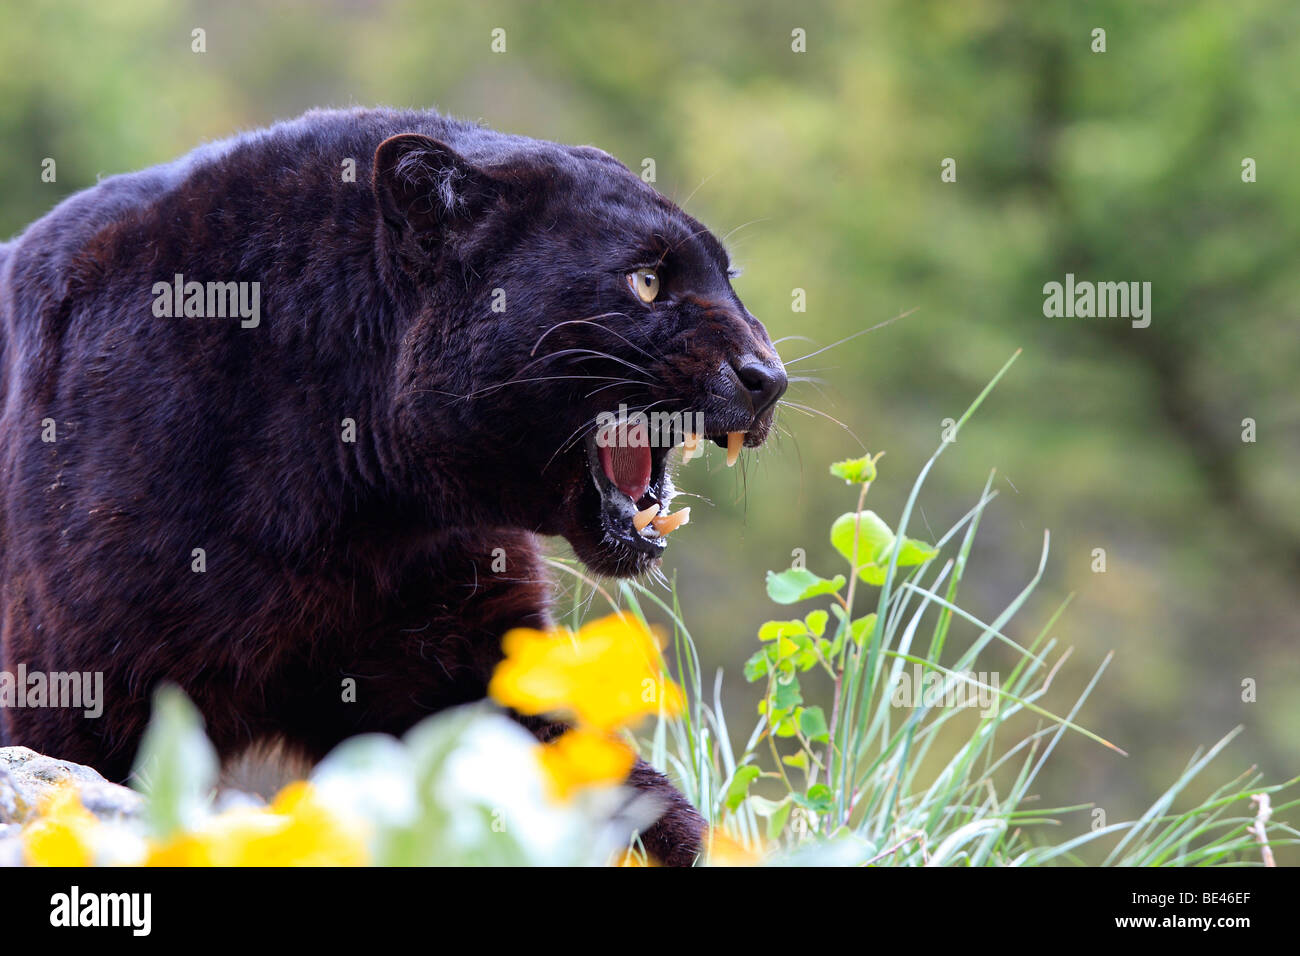 Black Panther (Panthera pardus). Black color phase of leopard, snarling - Stock Image